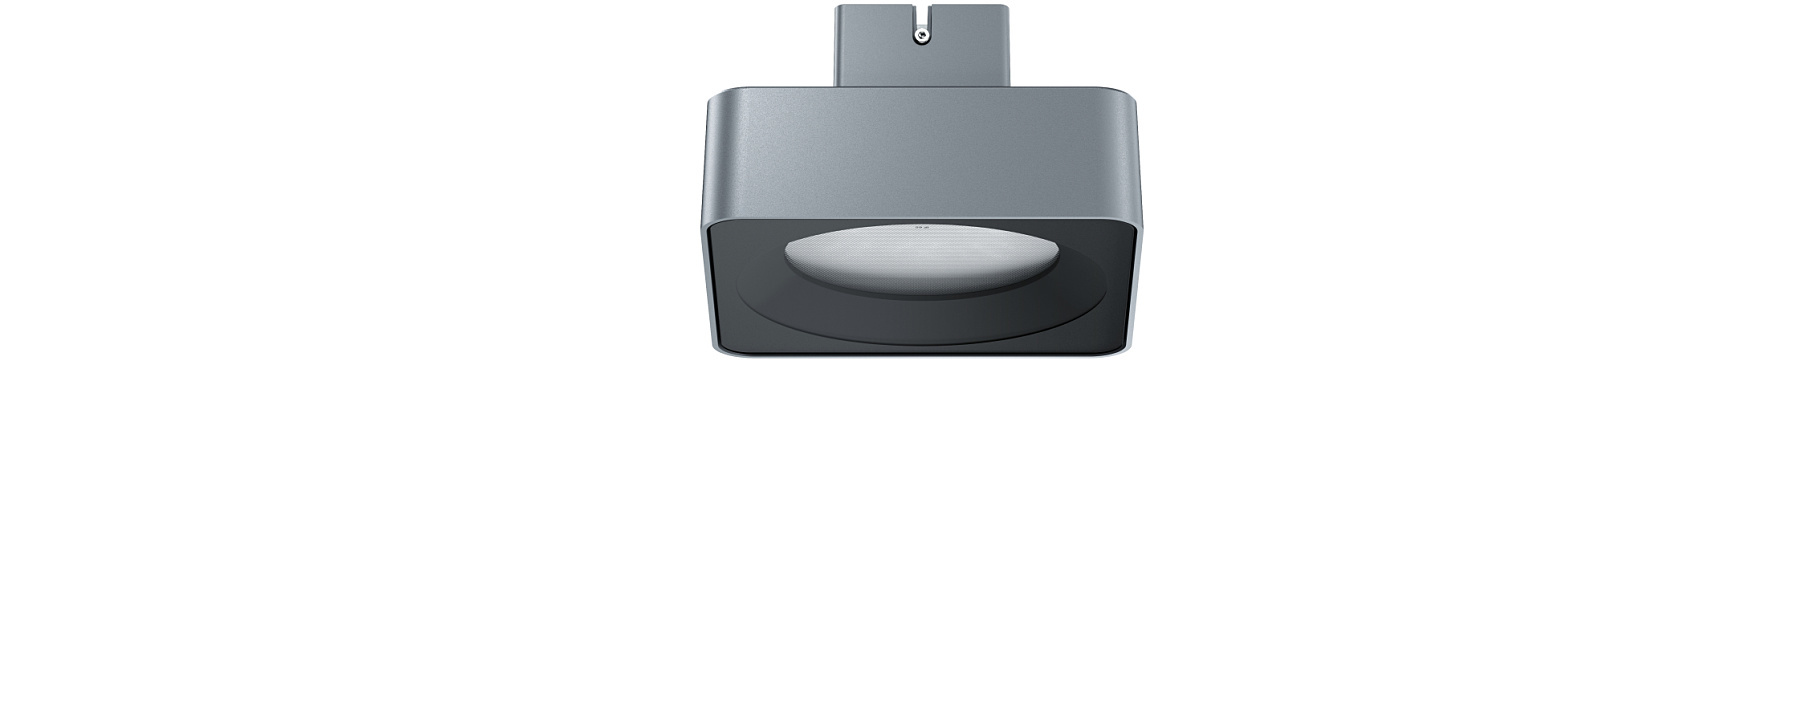 Lightscan - Surface-mounted luminaires